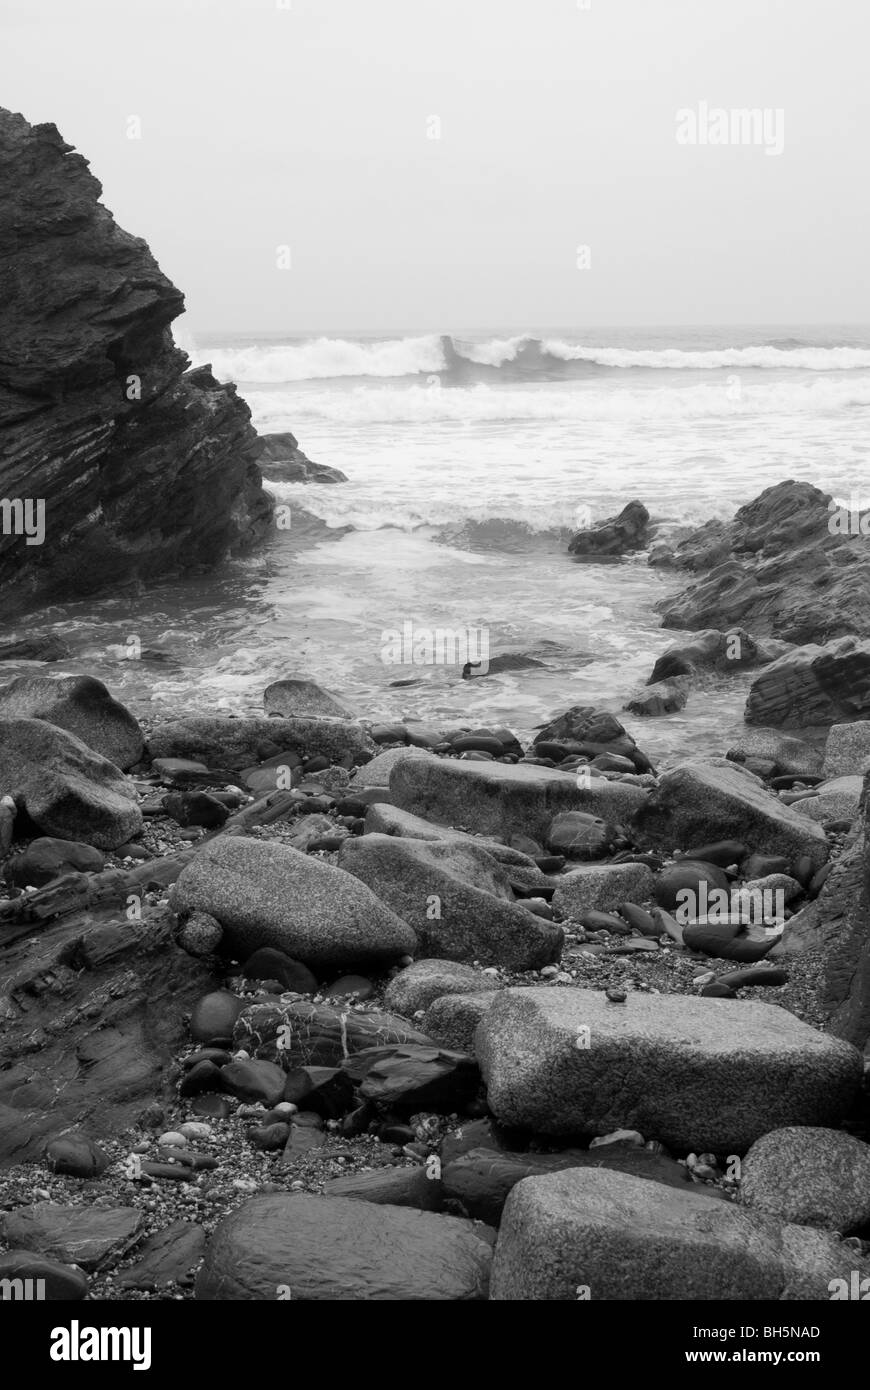 Rocky foreshore with surf breaking on a Cornish beach in black and white - Stock Image